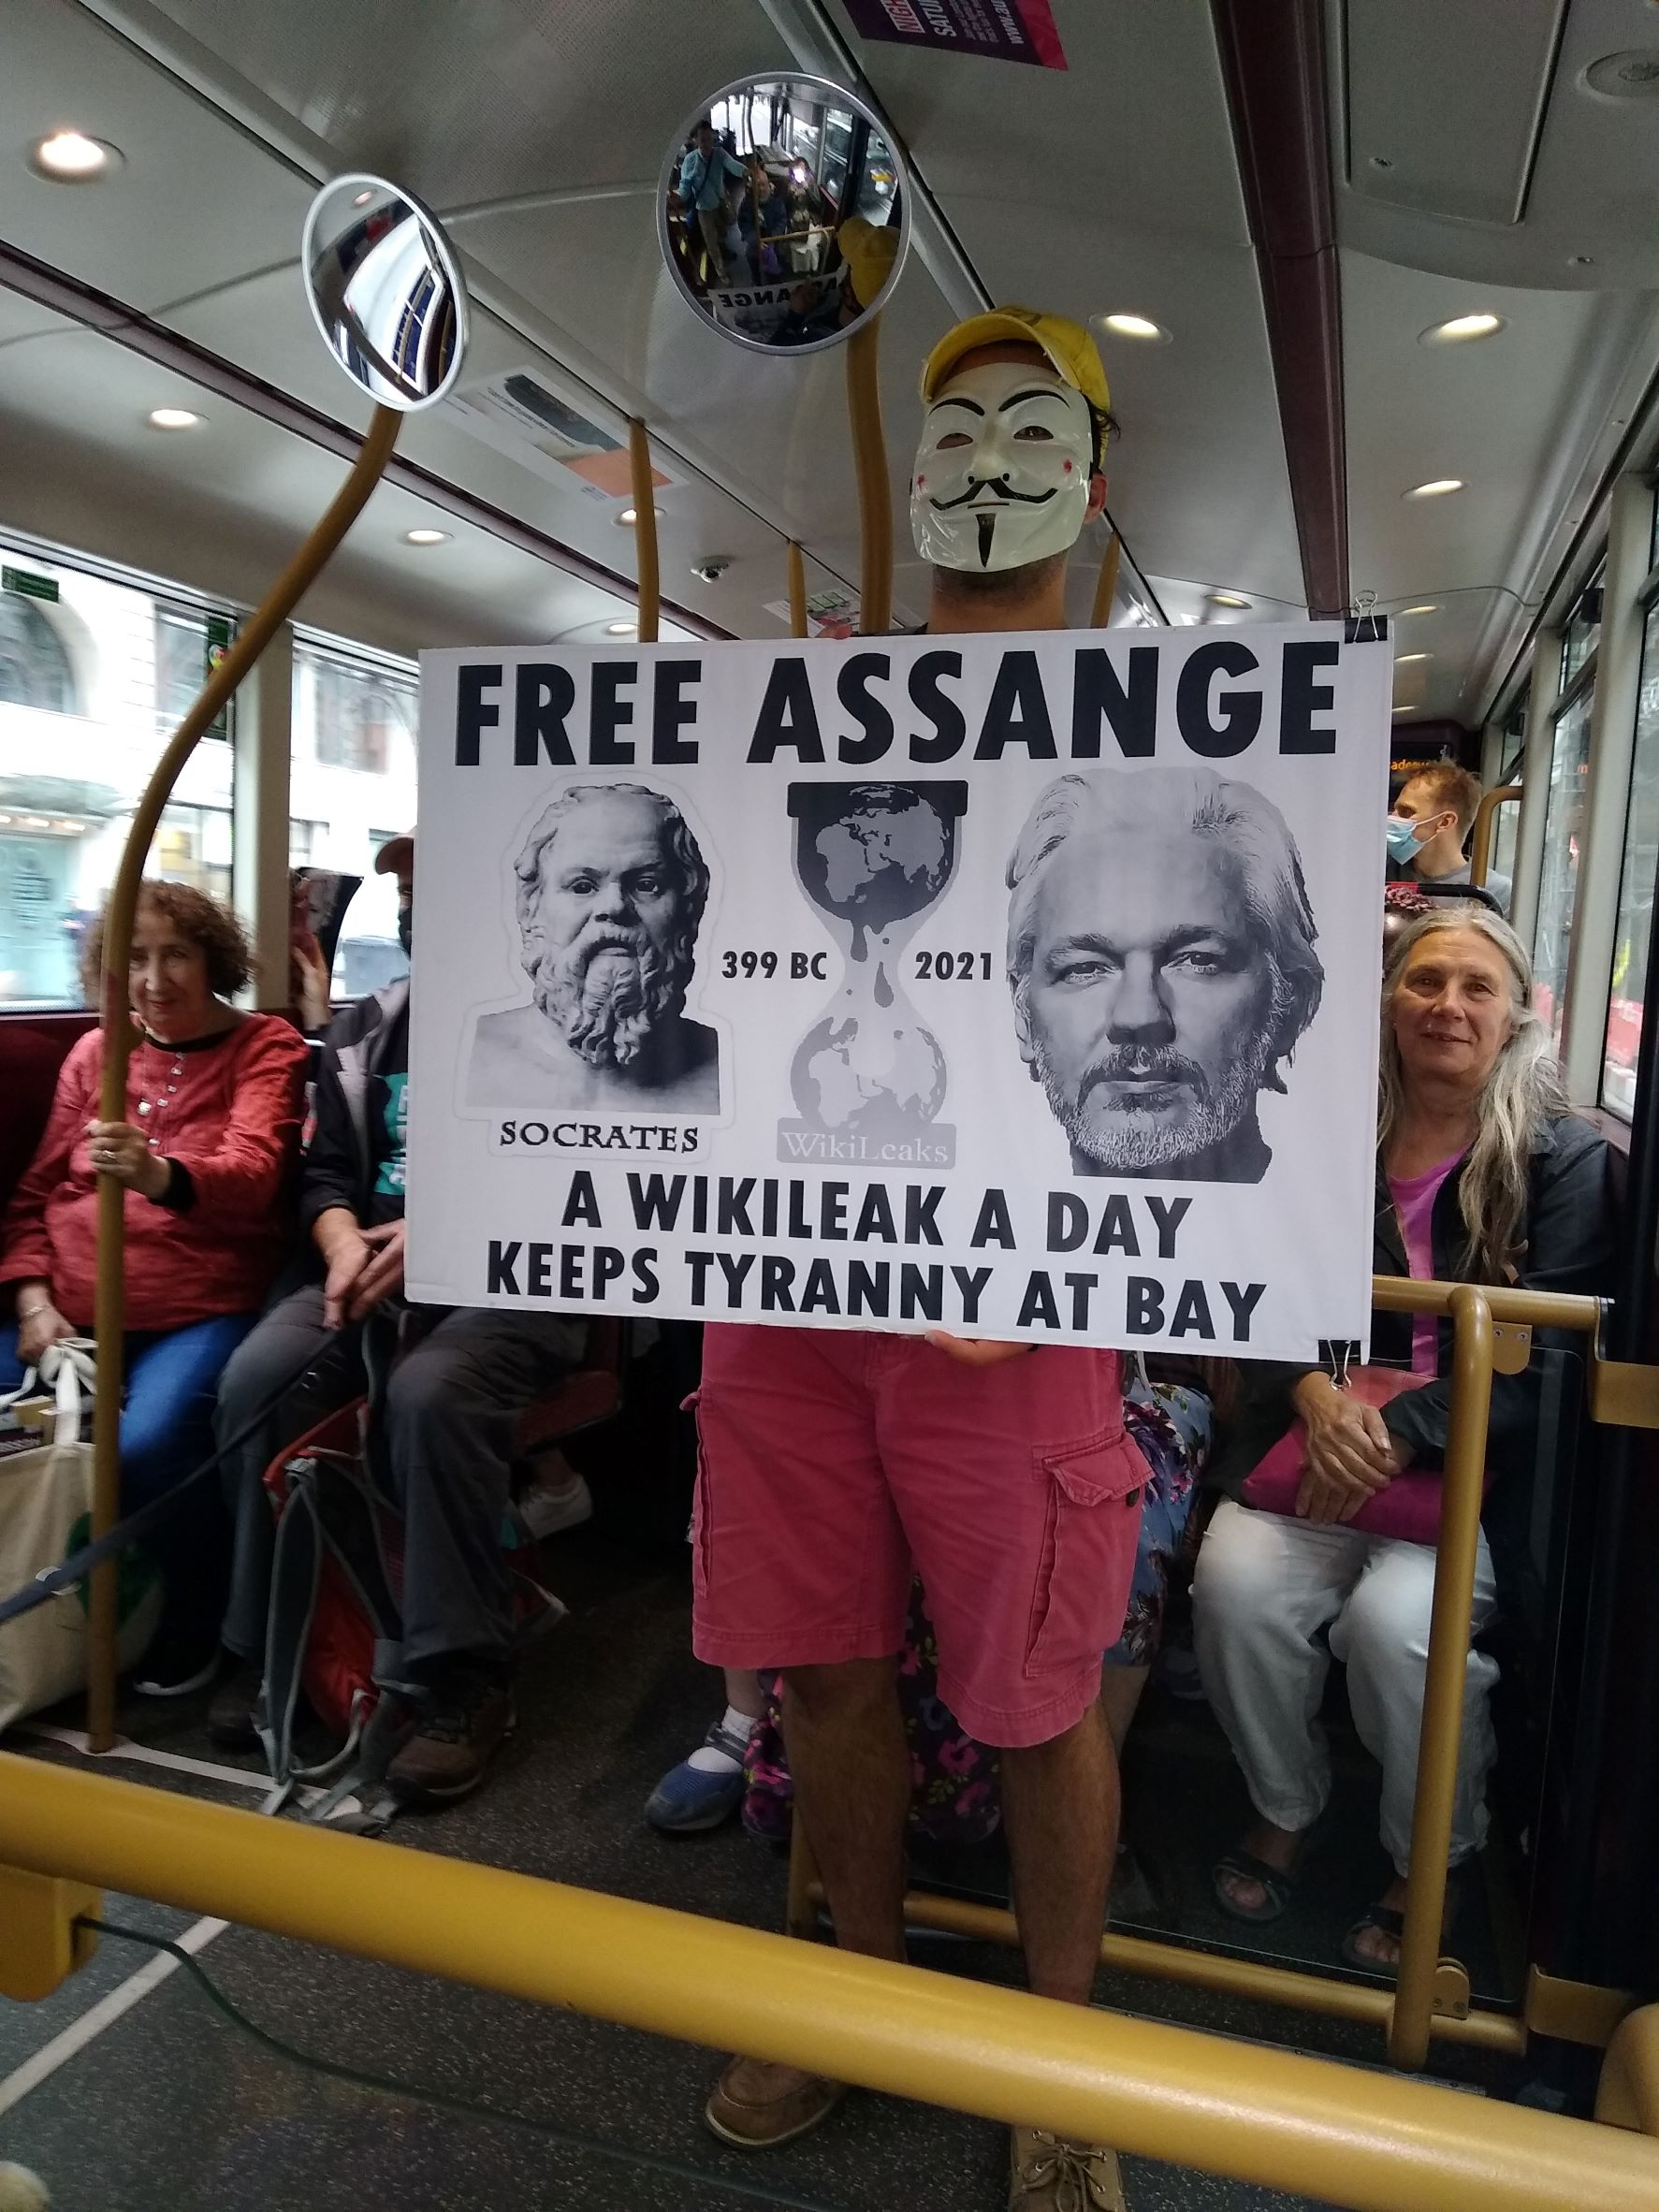 protest_photos:onthebuses.jpg